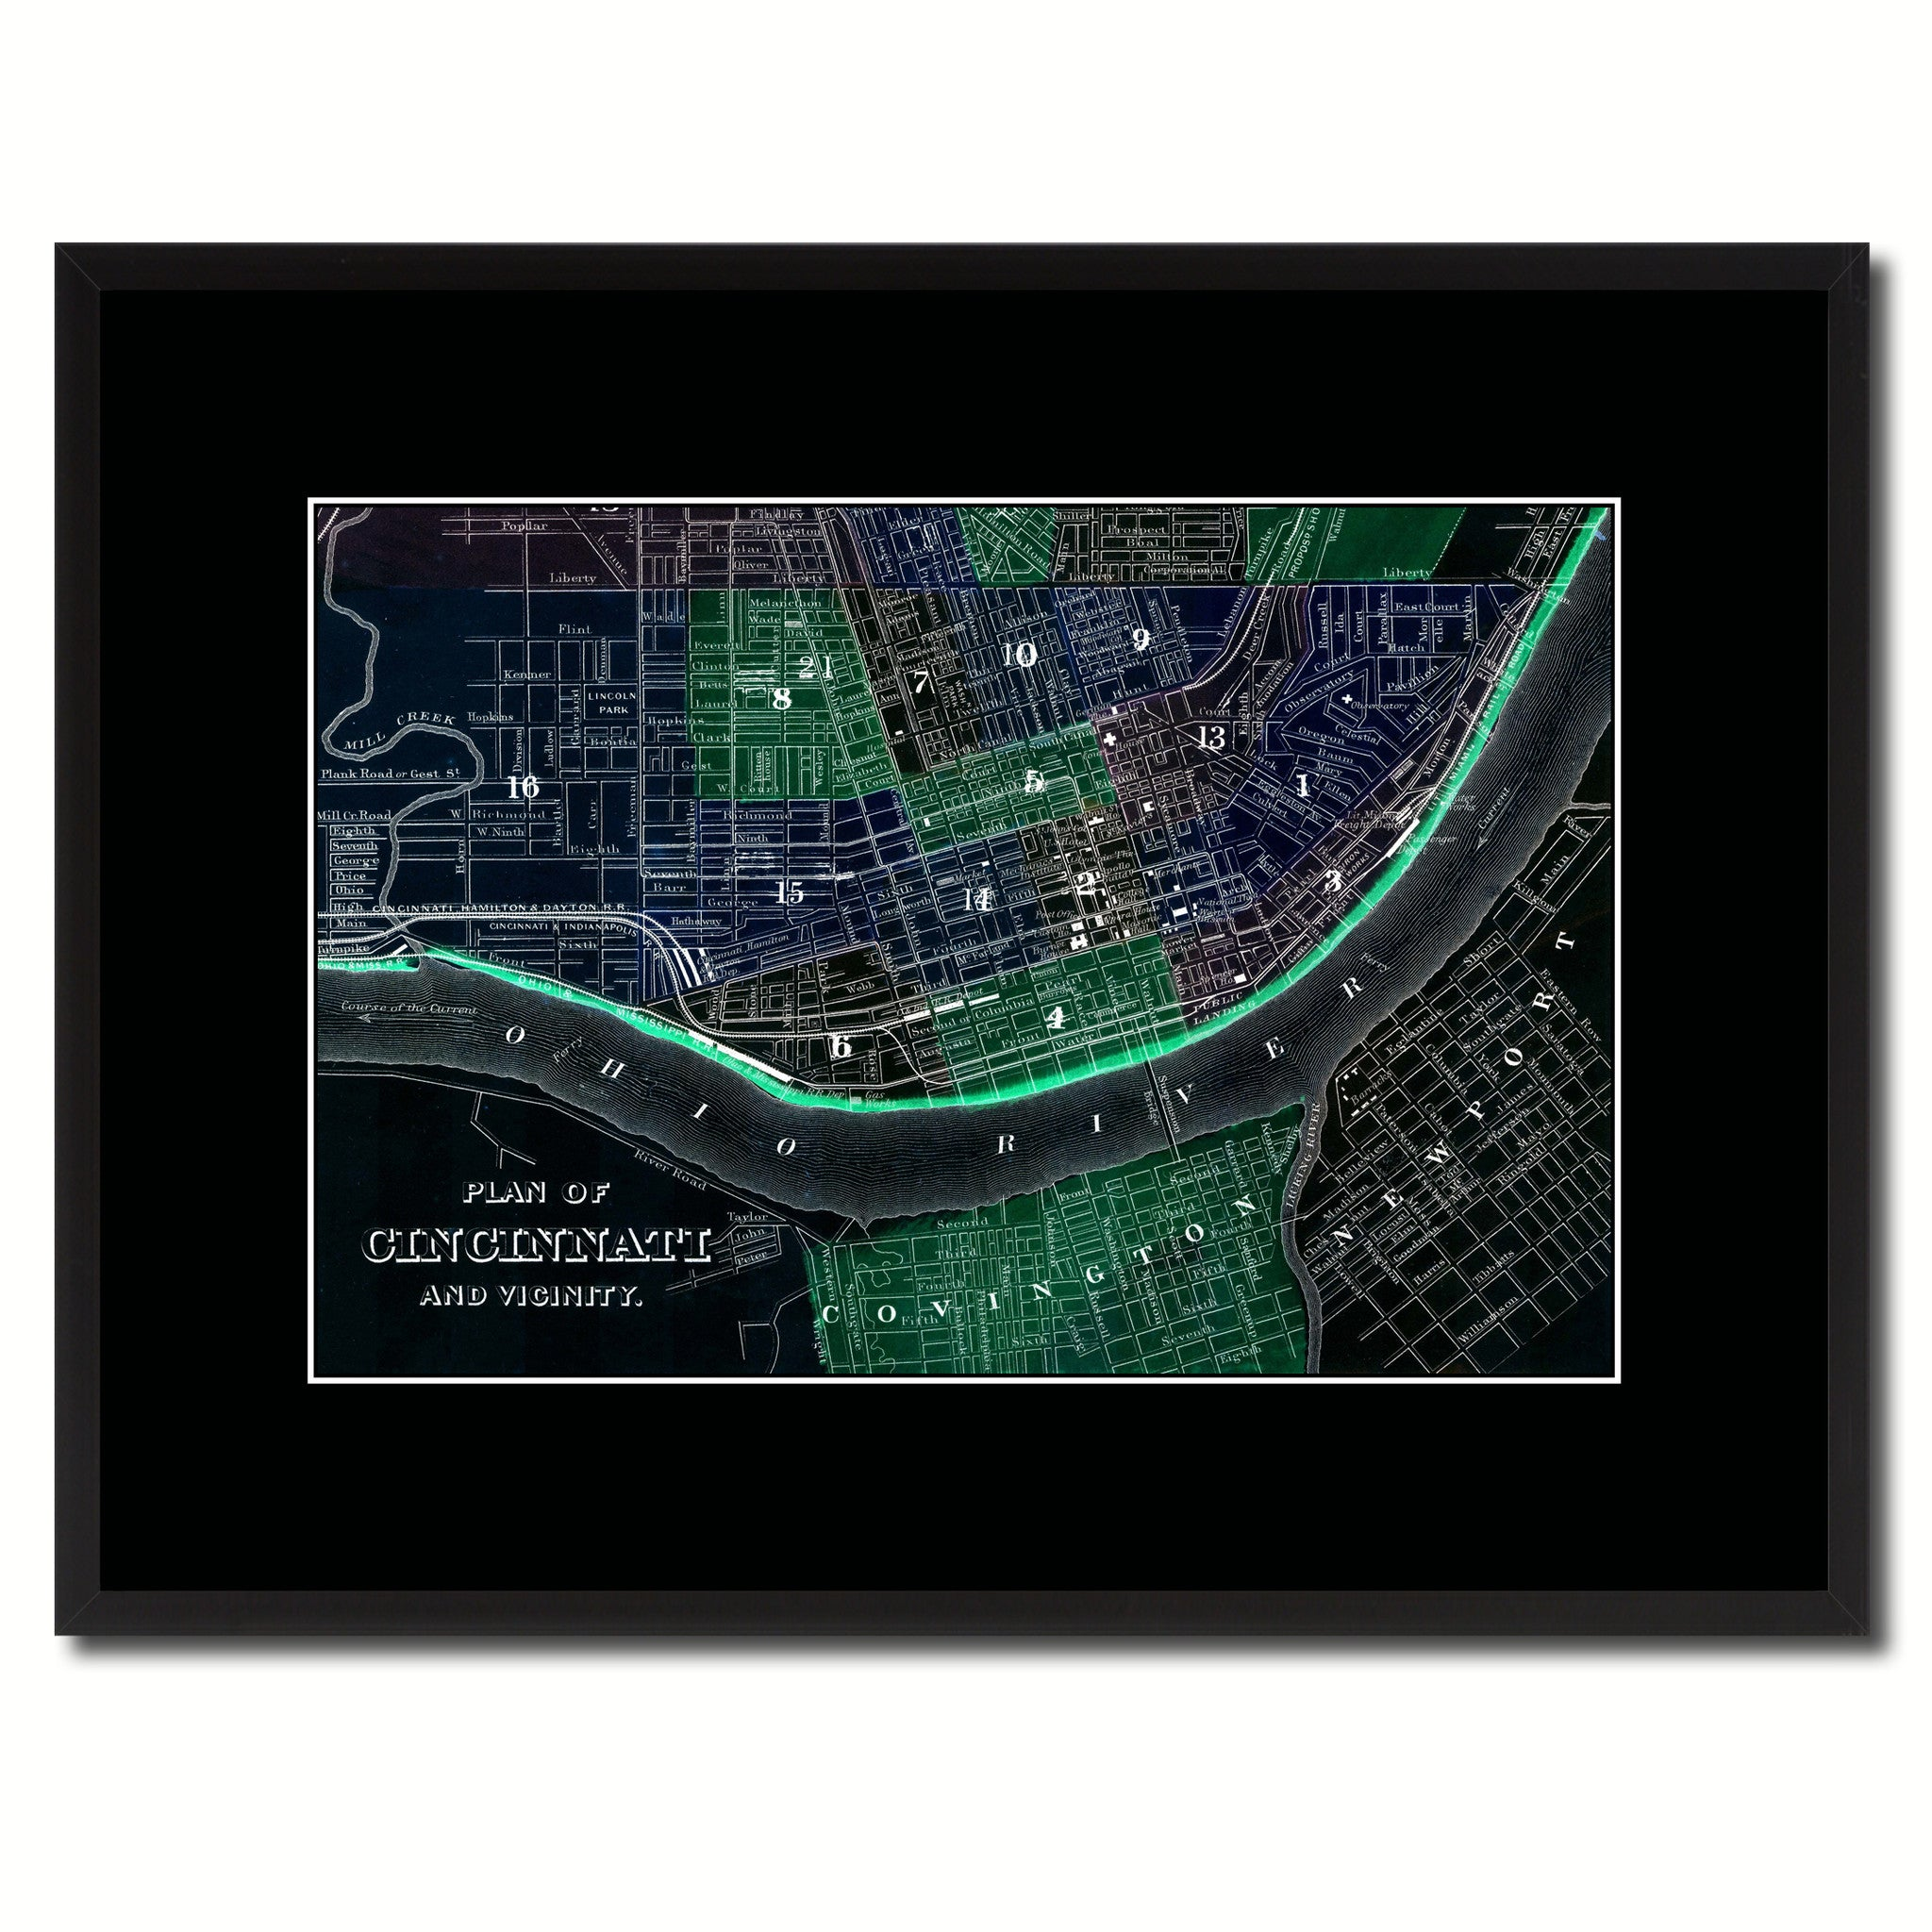 Cincinnati Vintage Vivid Color Map Canvas Print, Picture Frame Home Decor Wall Art Office Decoration Gift Ideas